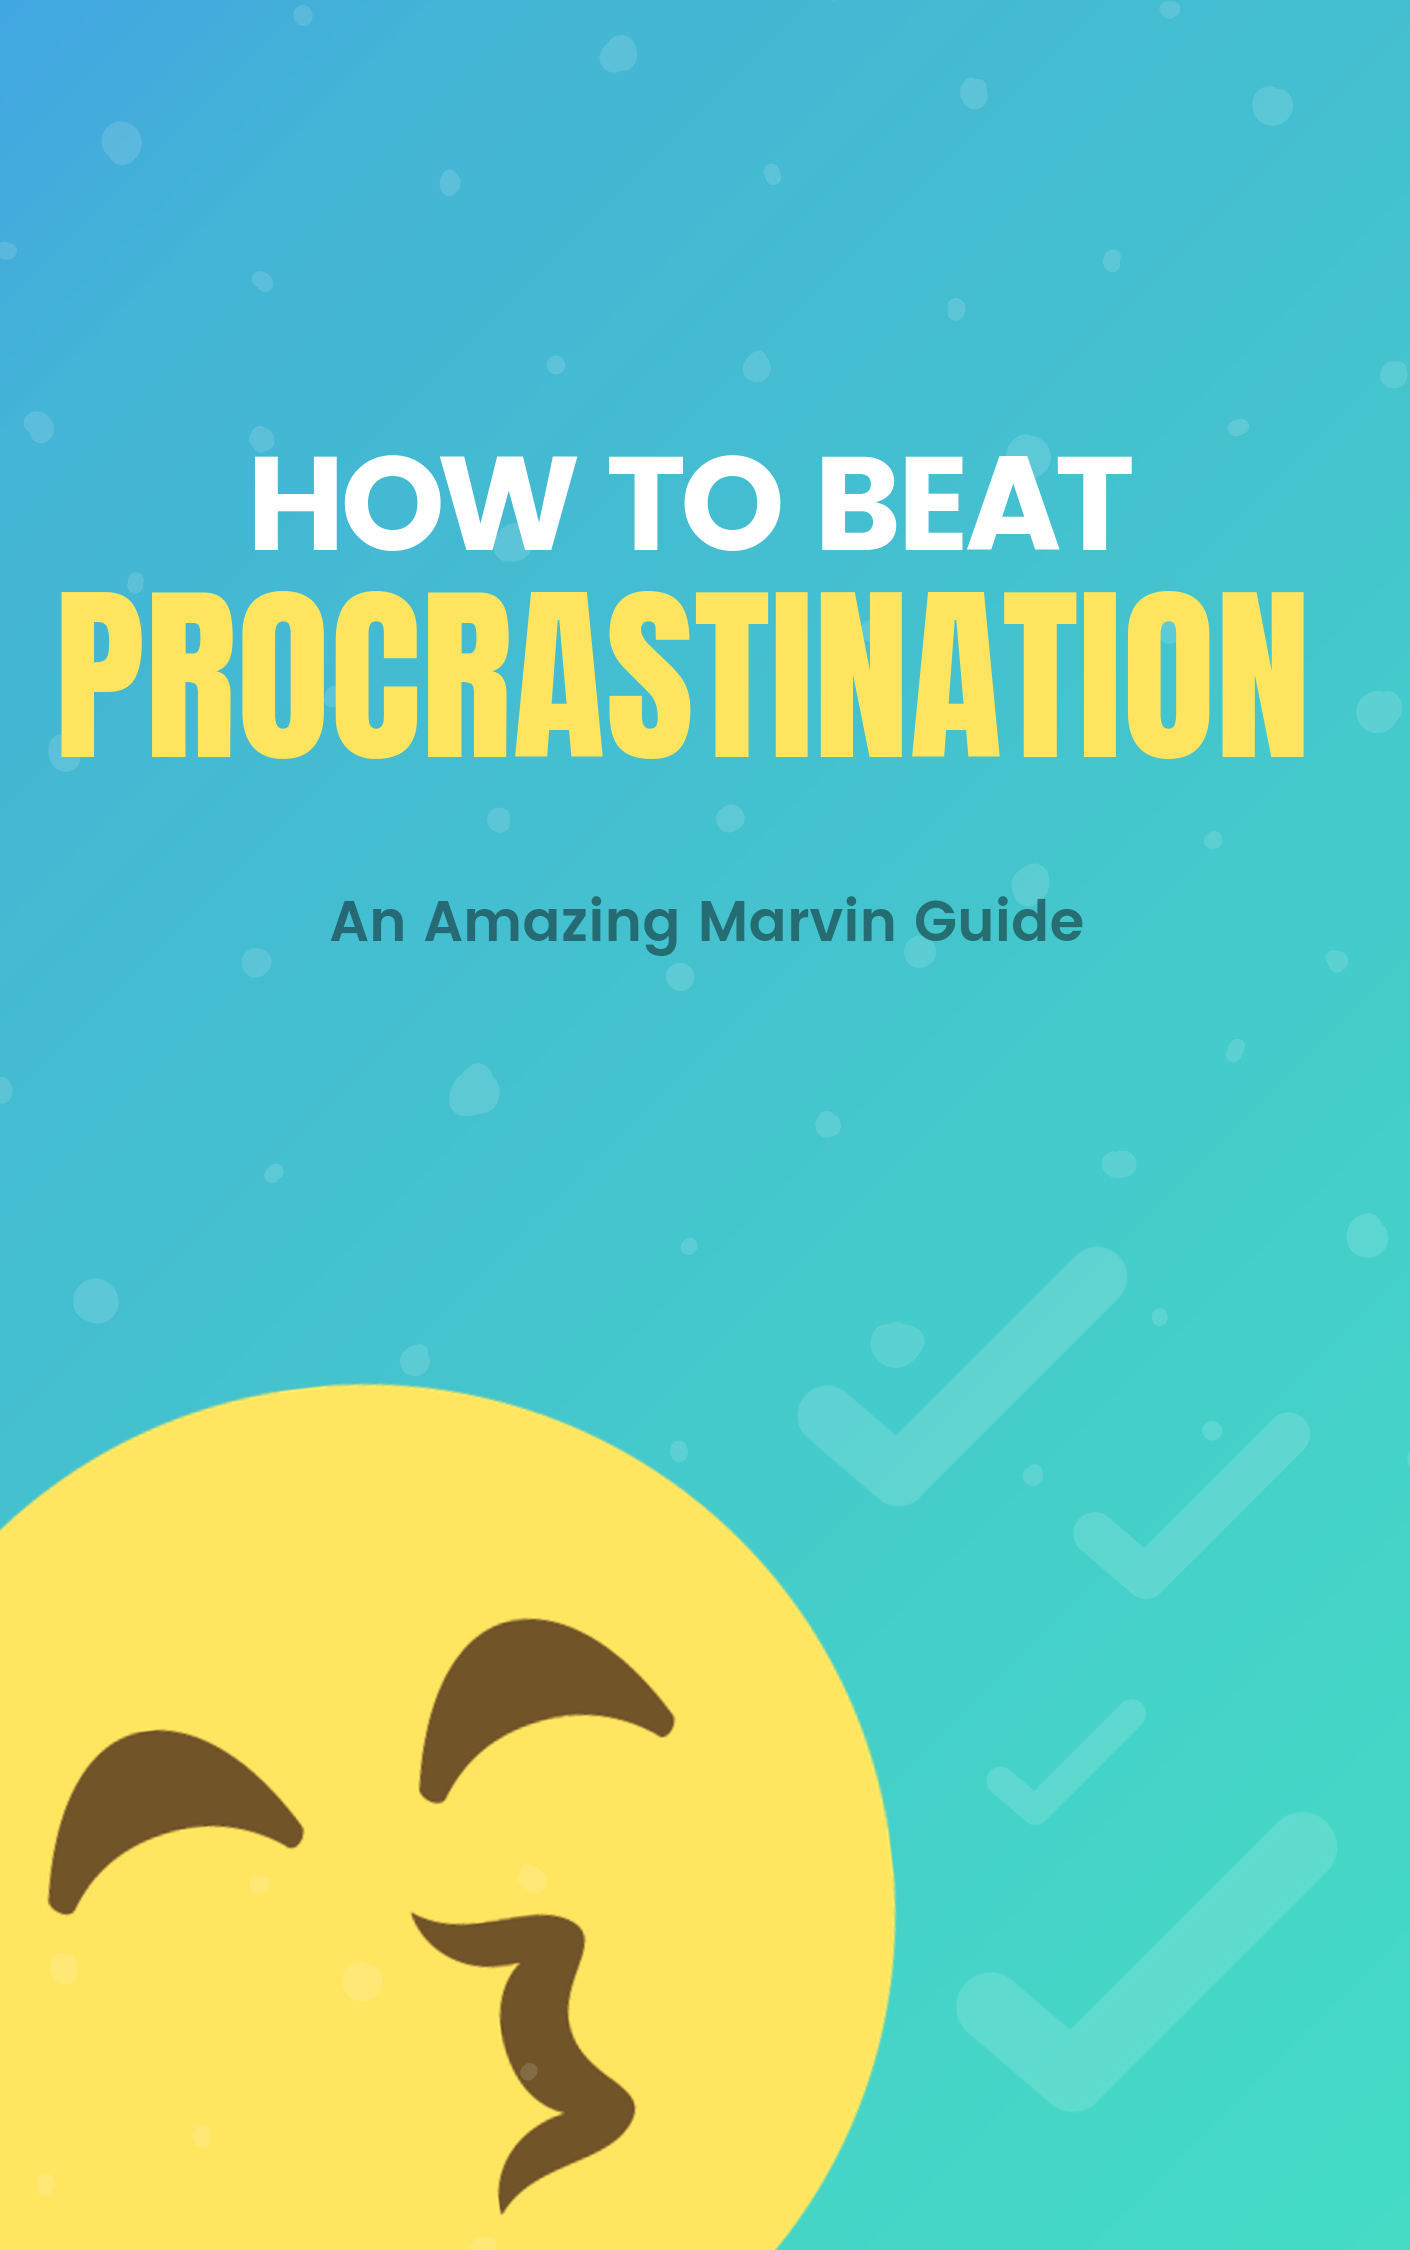 Amazing Marvin Procrastination Guide